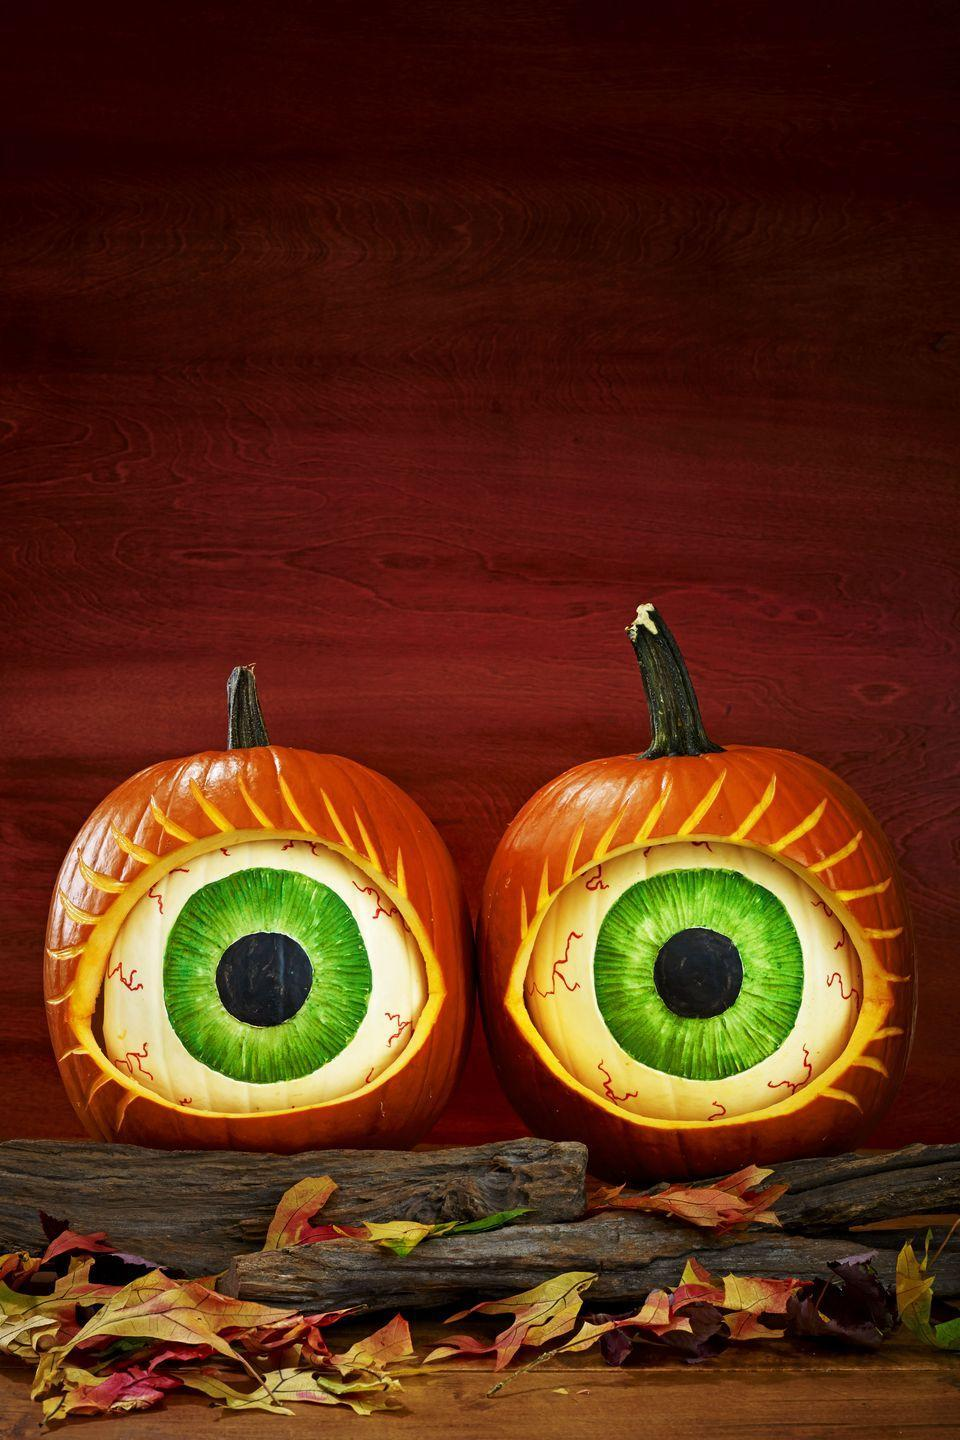 """<p>Keep an eye (or two) on the neighborhood with these creepy carved pumpkins. The secret? A smaller white pumpkin goes <em>inside </em>a larger orange pumpkin.</p><p><a href=""""https://www.womansday.com/home/crafts-projects/a28713862/eye-see-you-pumpkins/"""" rel=""""nofollow noopener"""" target=""""_blank"""" data-ylk=""""slk:Get the Pumpkin Eyes tutorial."""" class=""""link rapid-noclick-resp""""><strong><em>Get the Pumpkin Eyes tutorial.</em></strong></a></p>"""